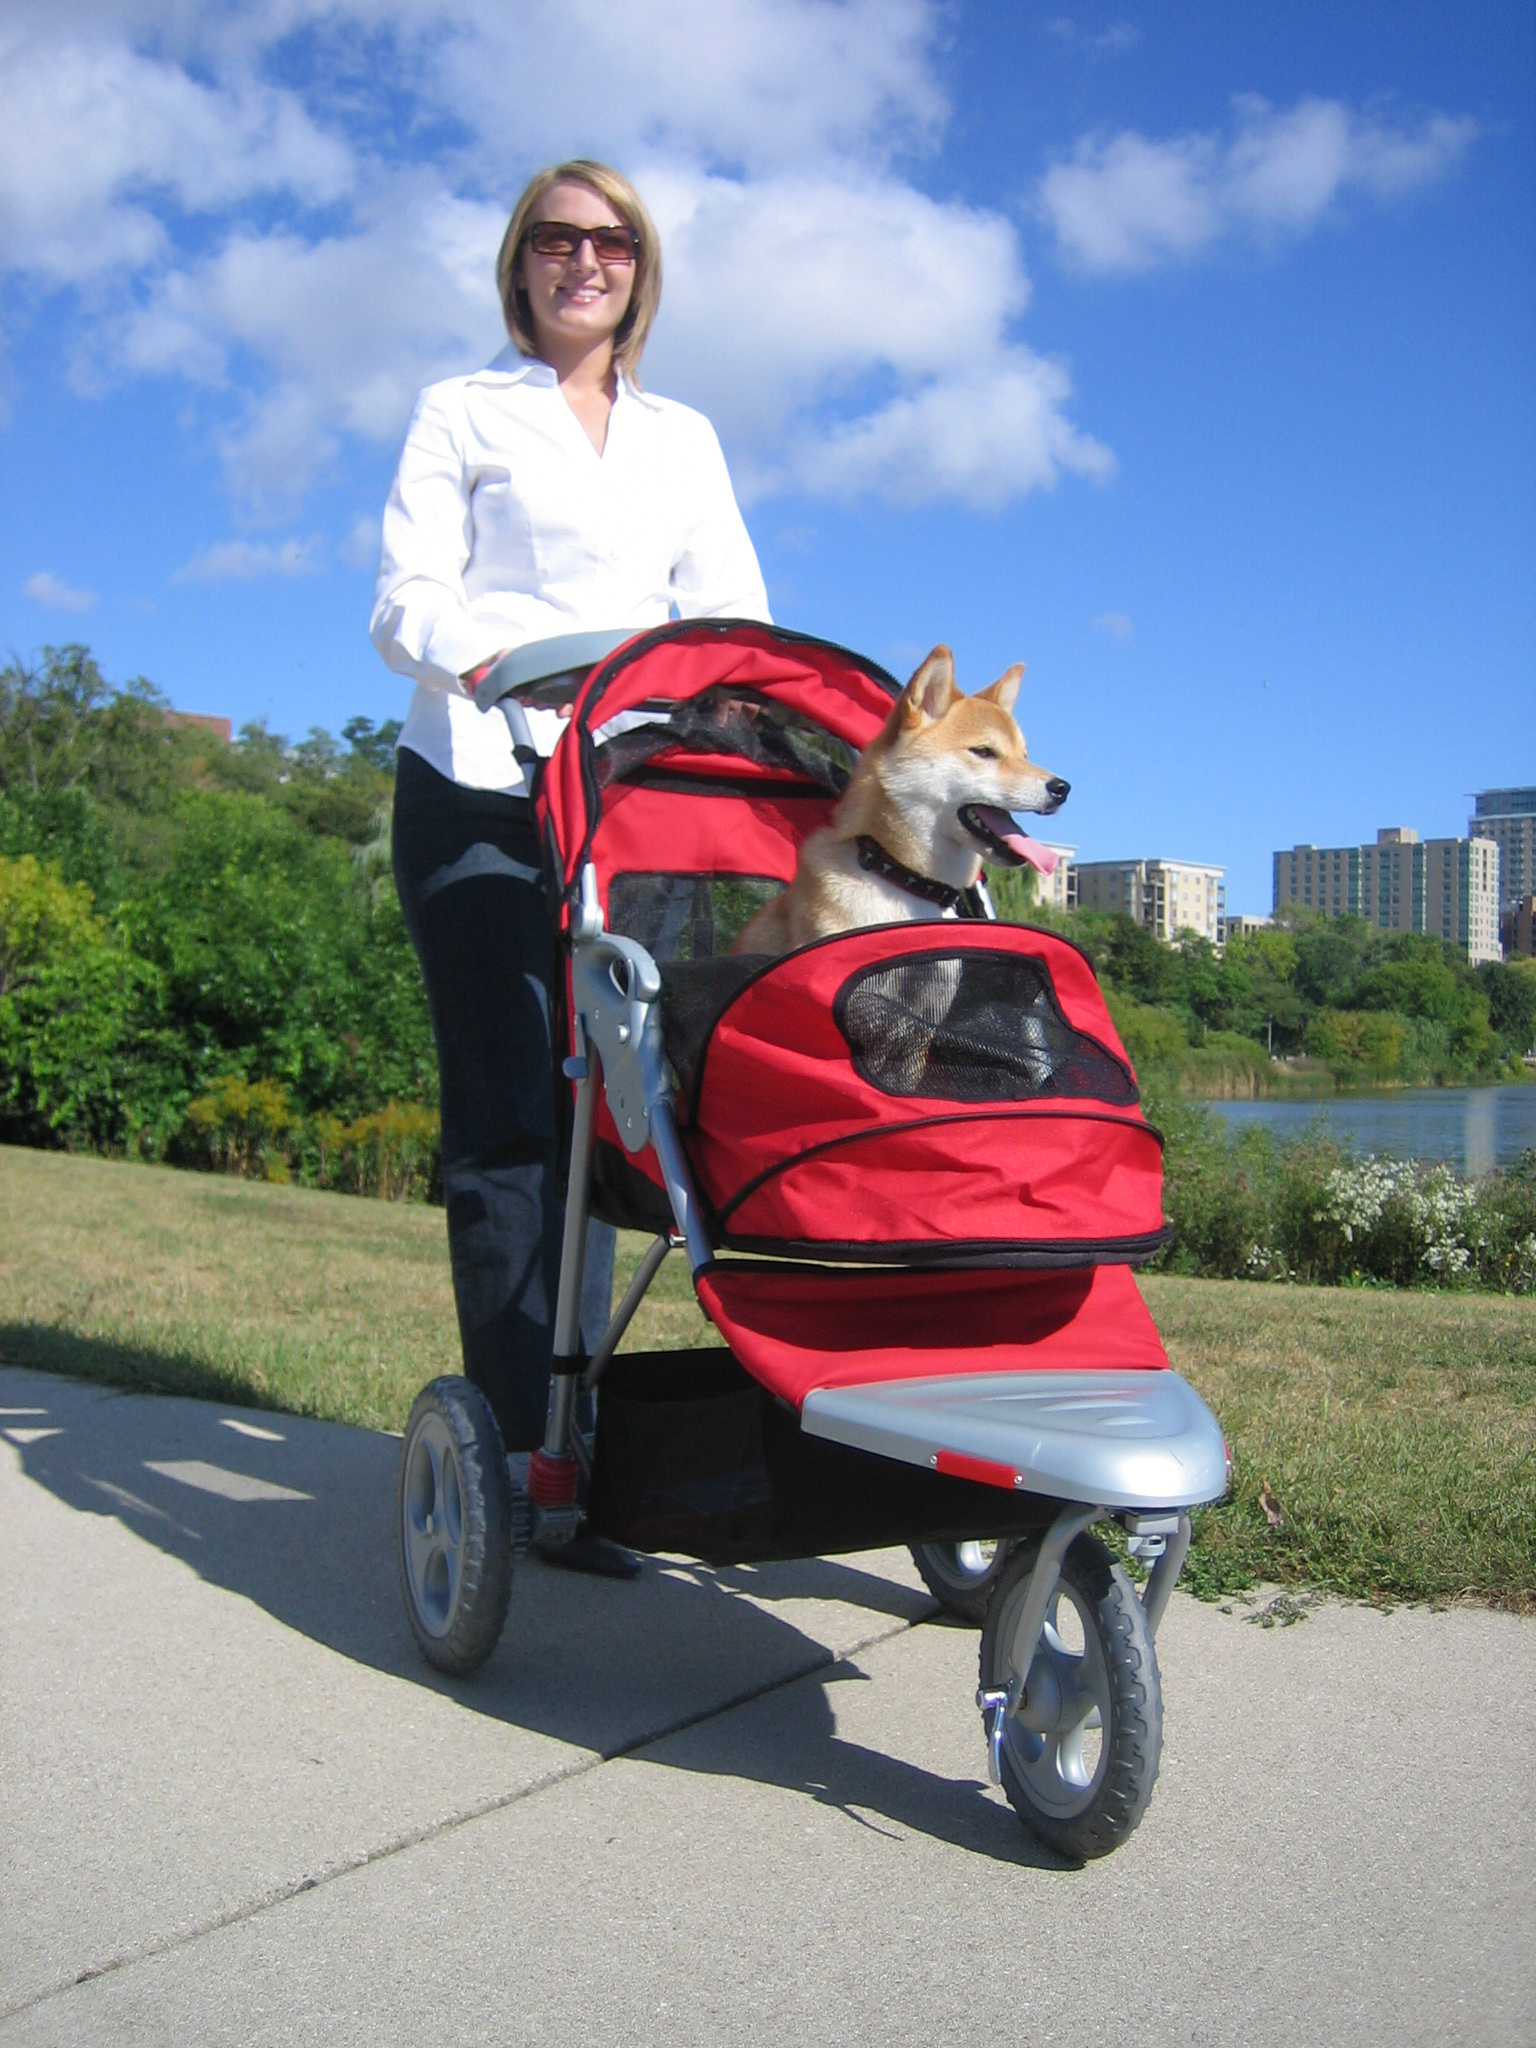 Selecting The Right Pet Stroller Makes A Positive